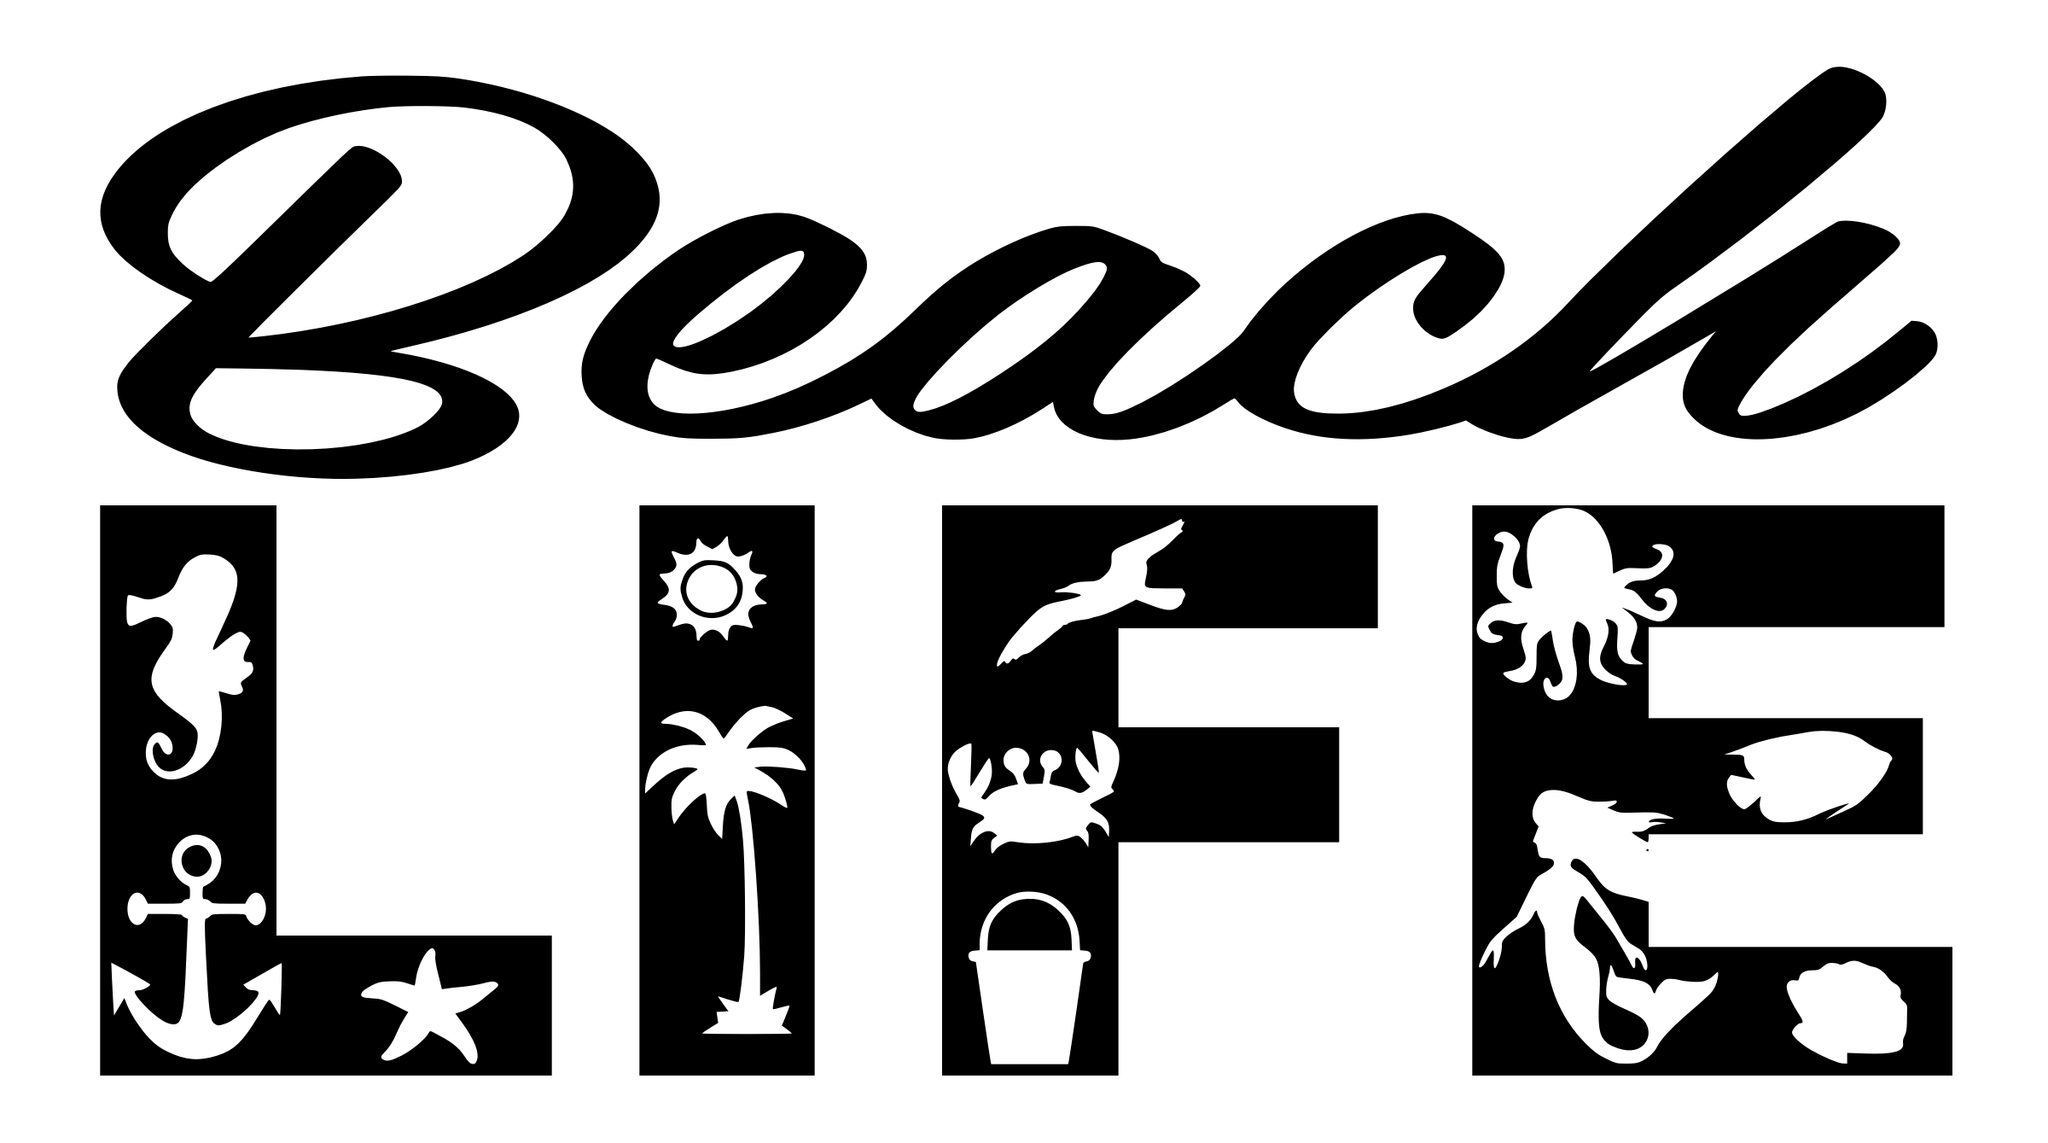 Download Beach-Life.svg | Cricut, Cricut projects vinyl, Svg